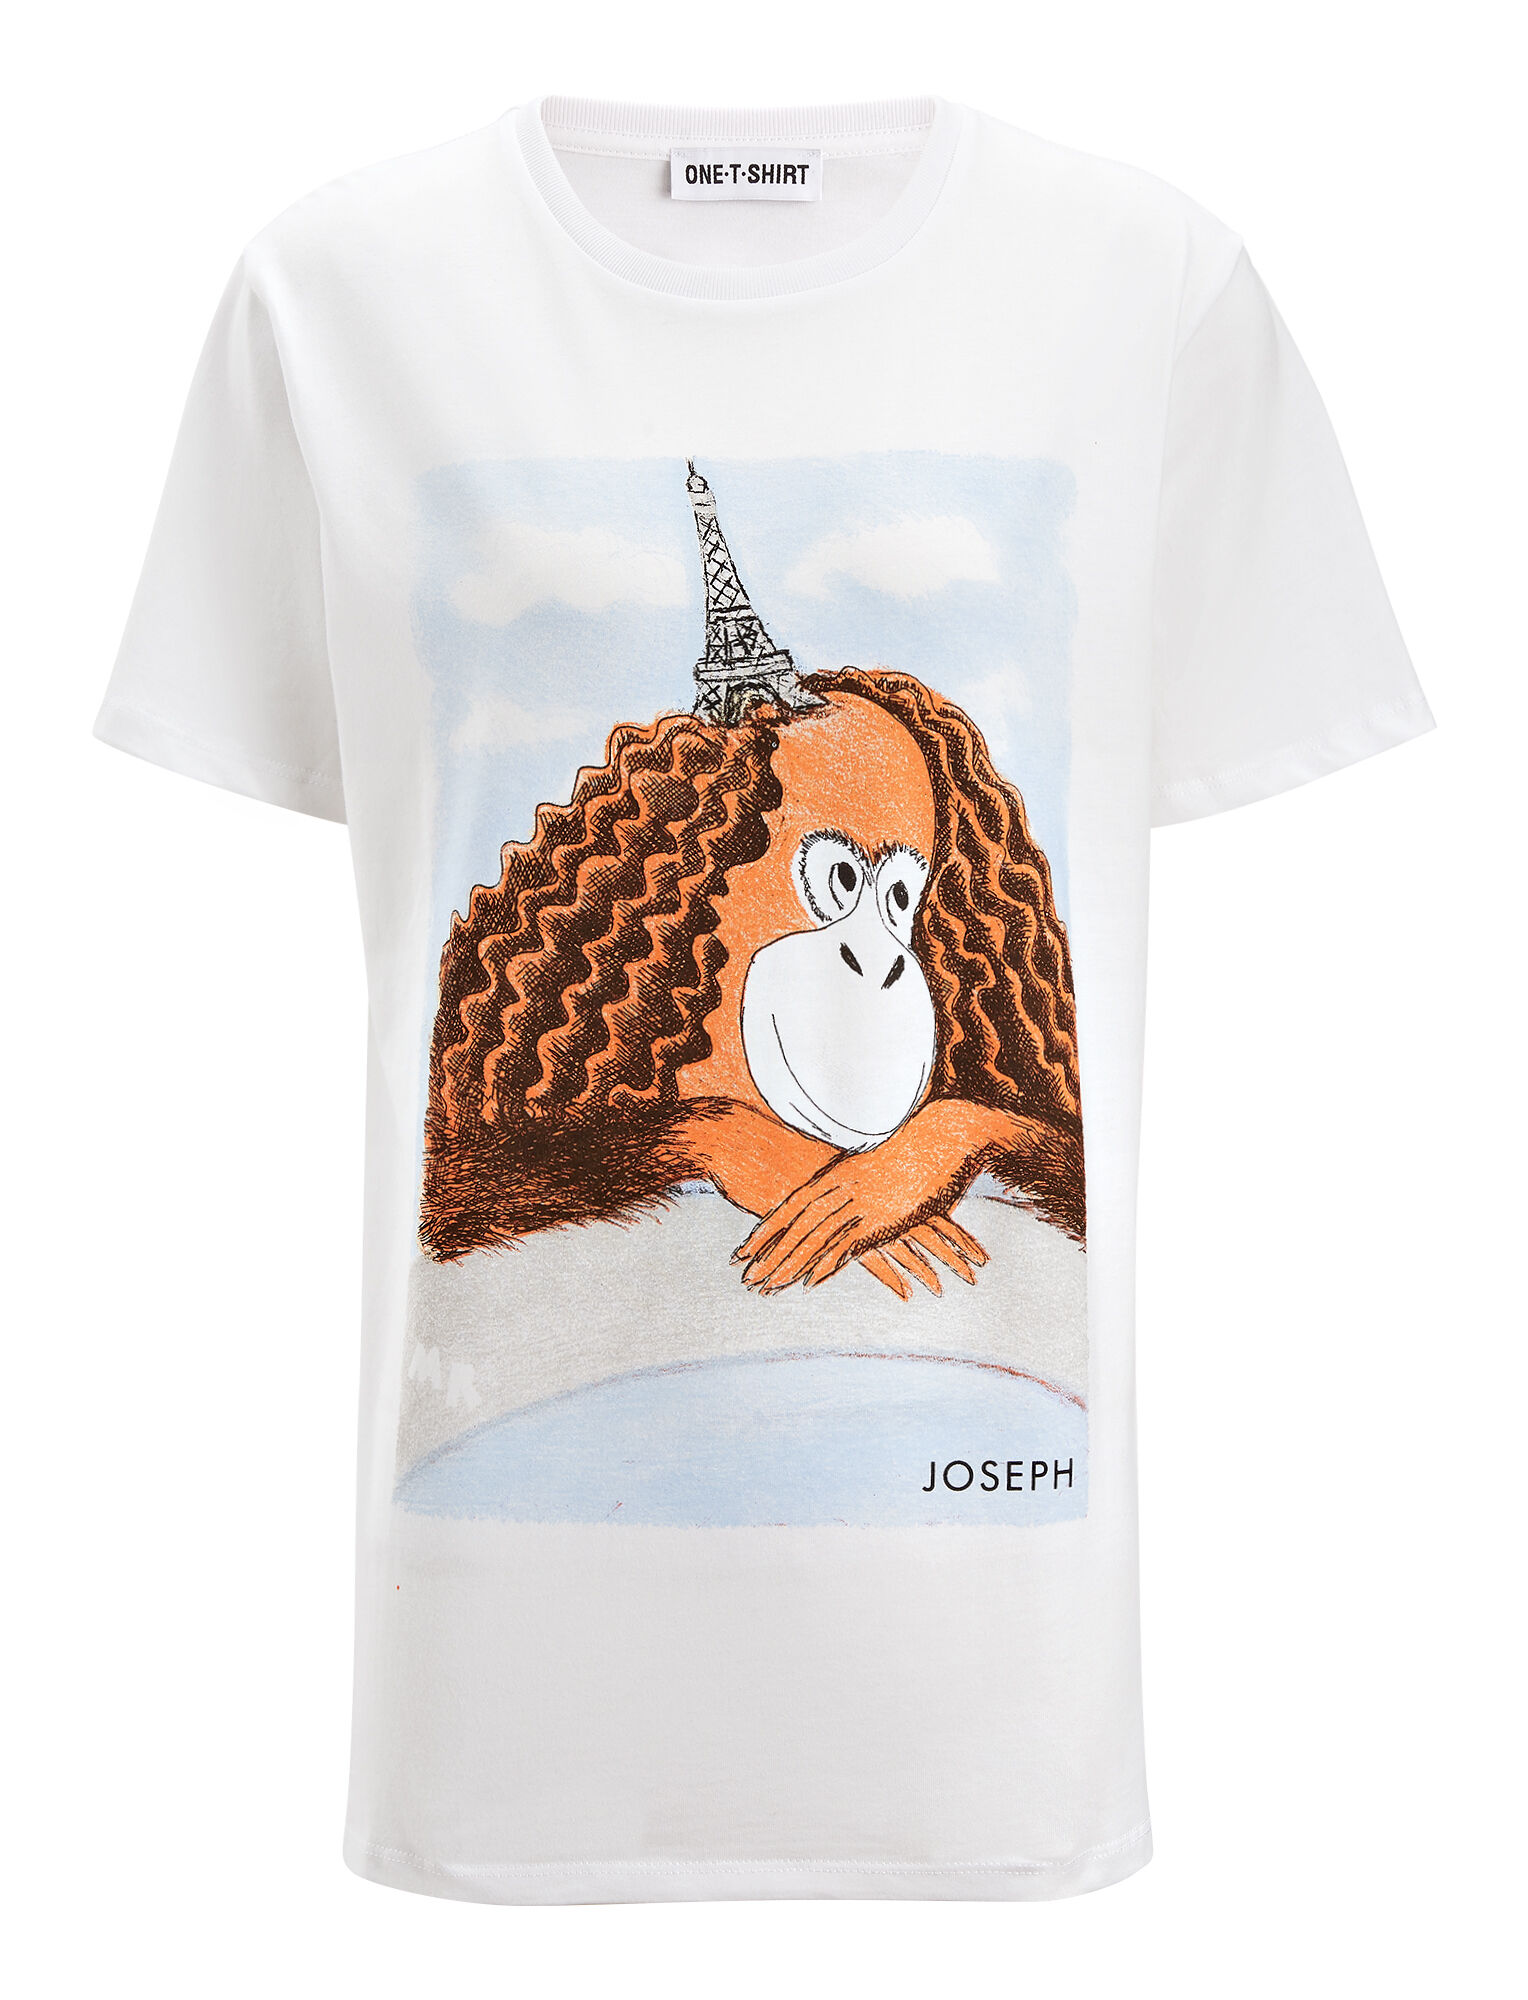 Joseph, GingerNutz Tower Hat Tee, in WHITE